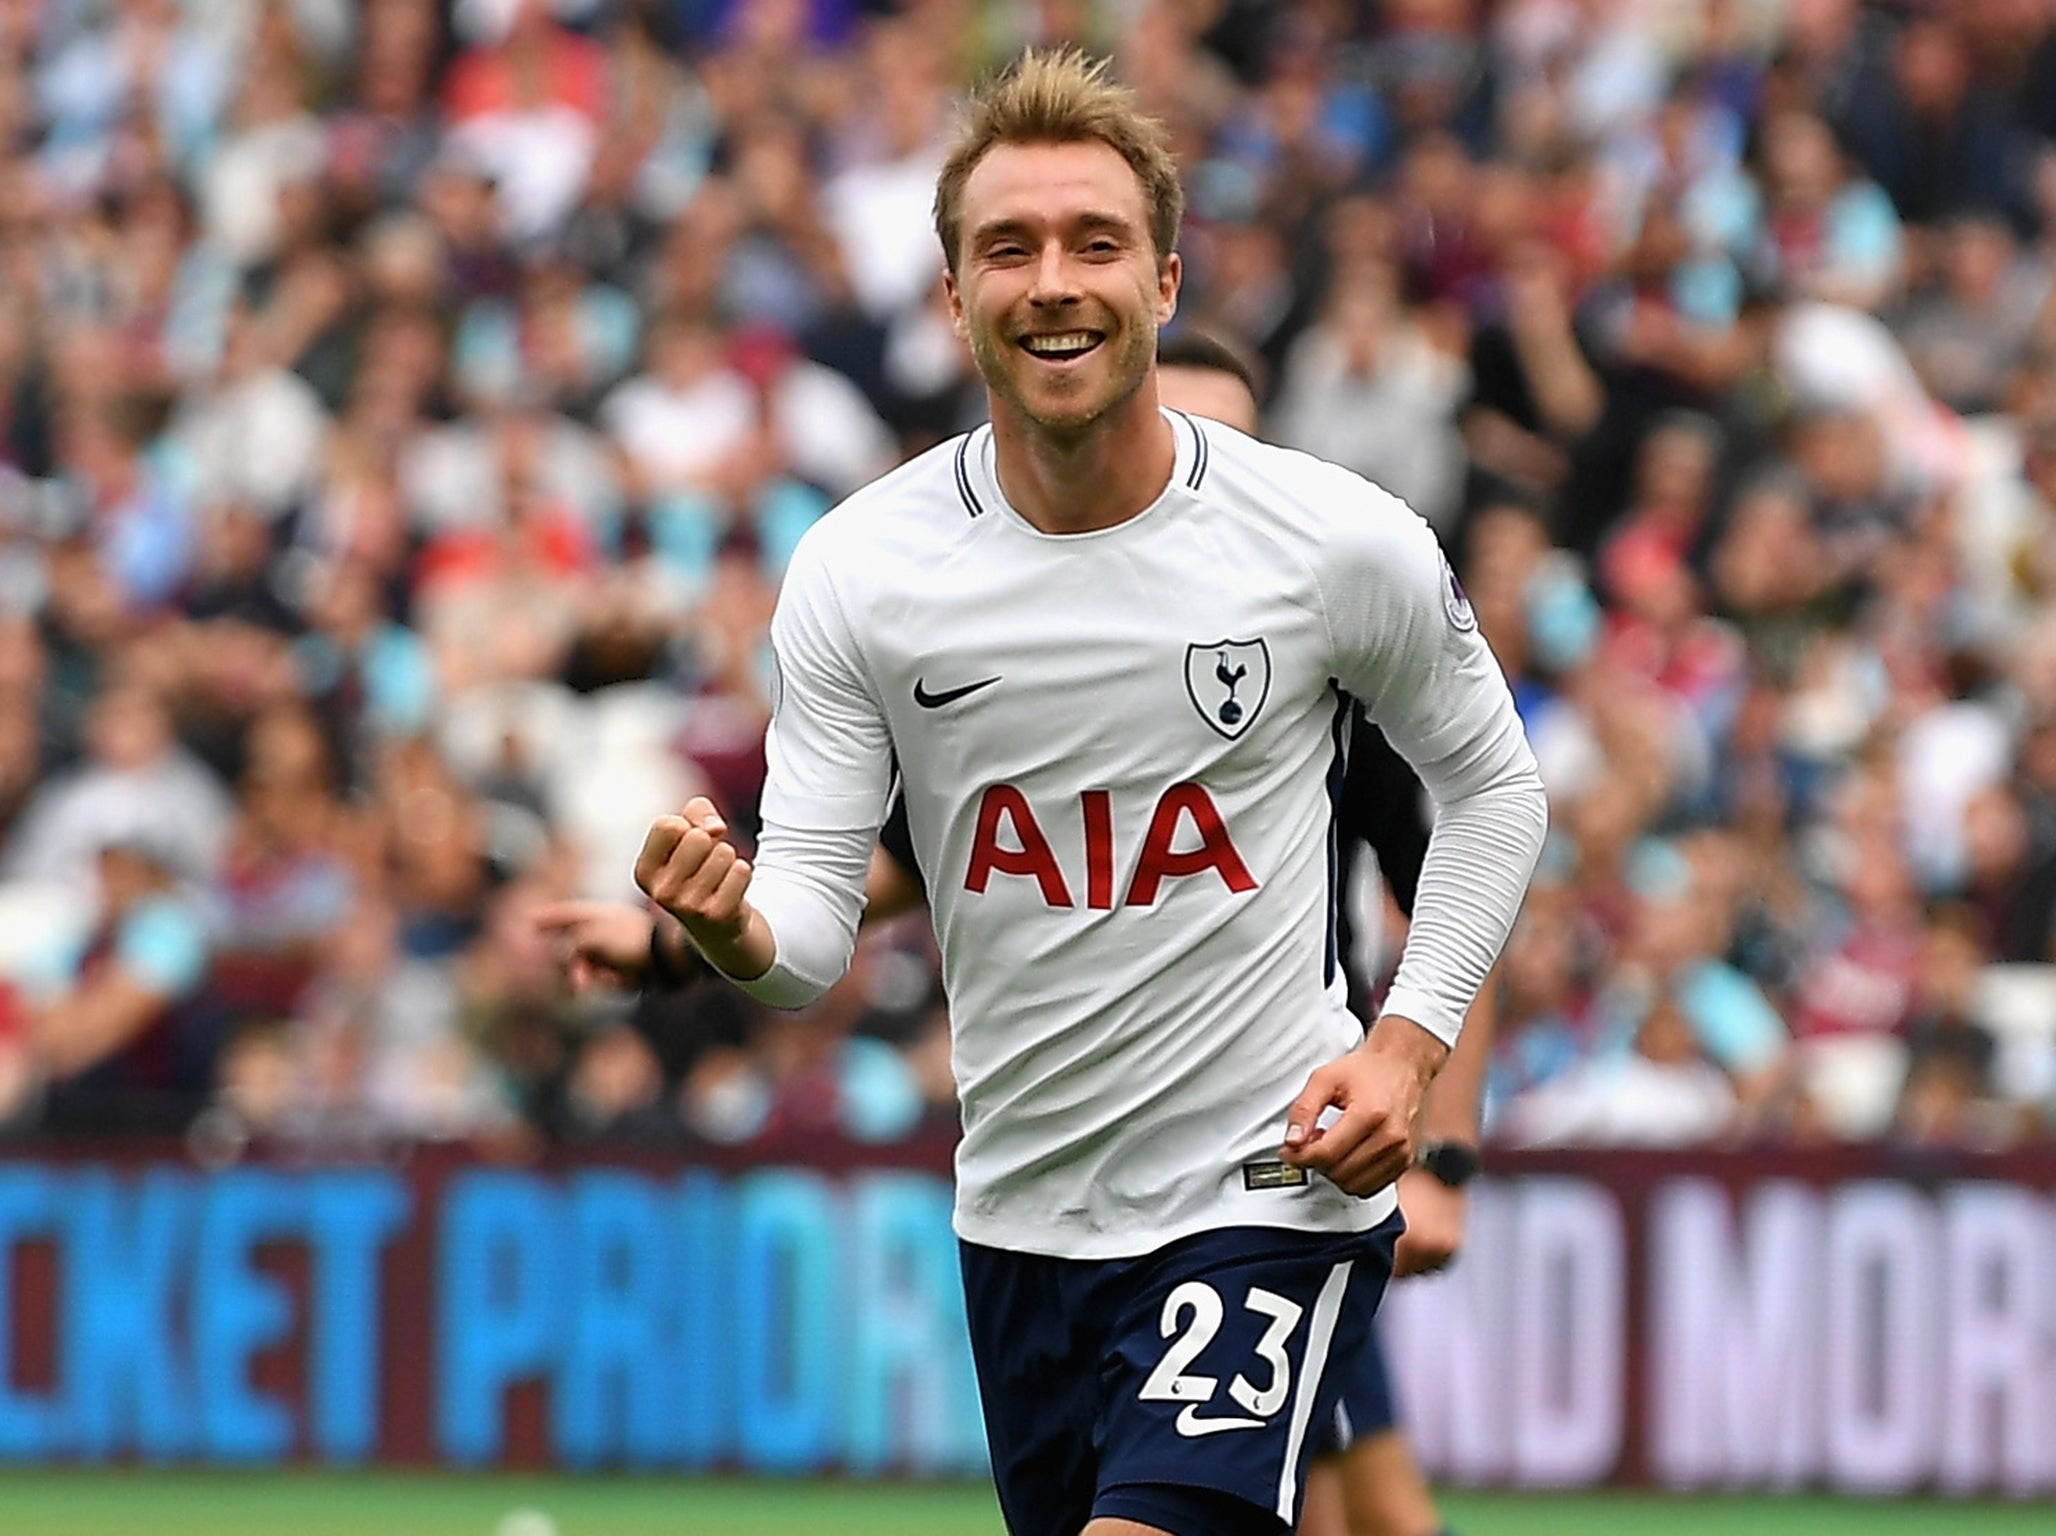 Christian Eriksen happy to move Nicklas Bendtner to the side after